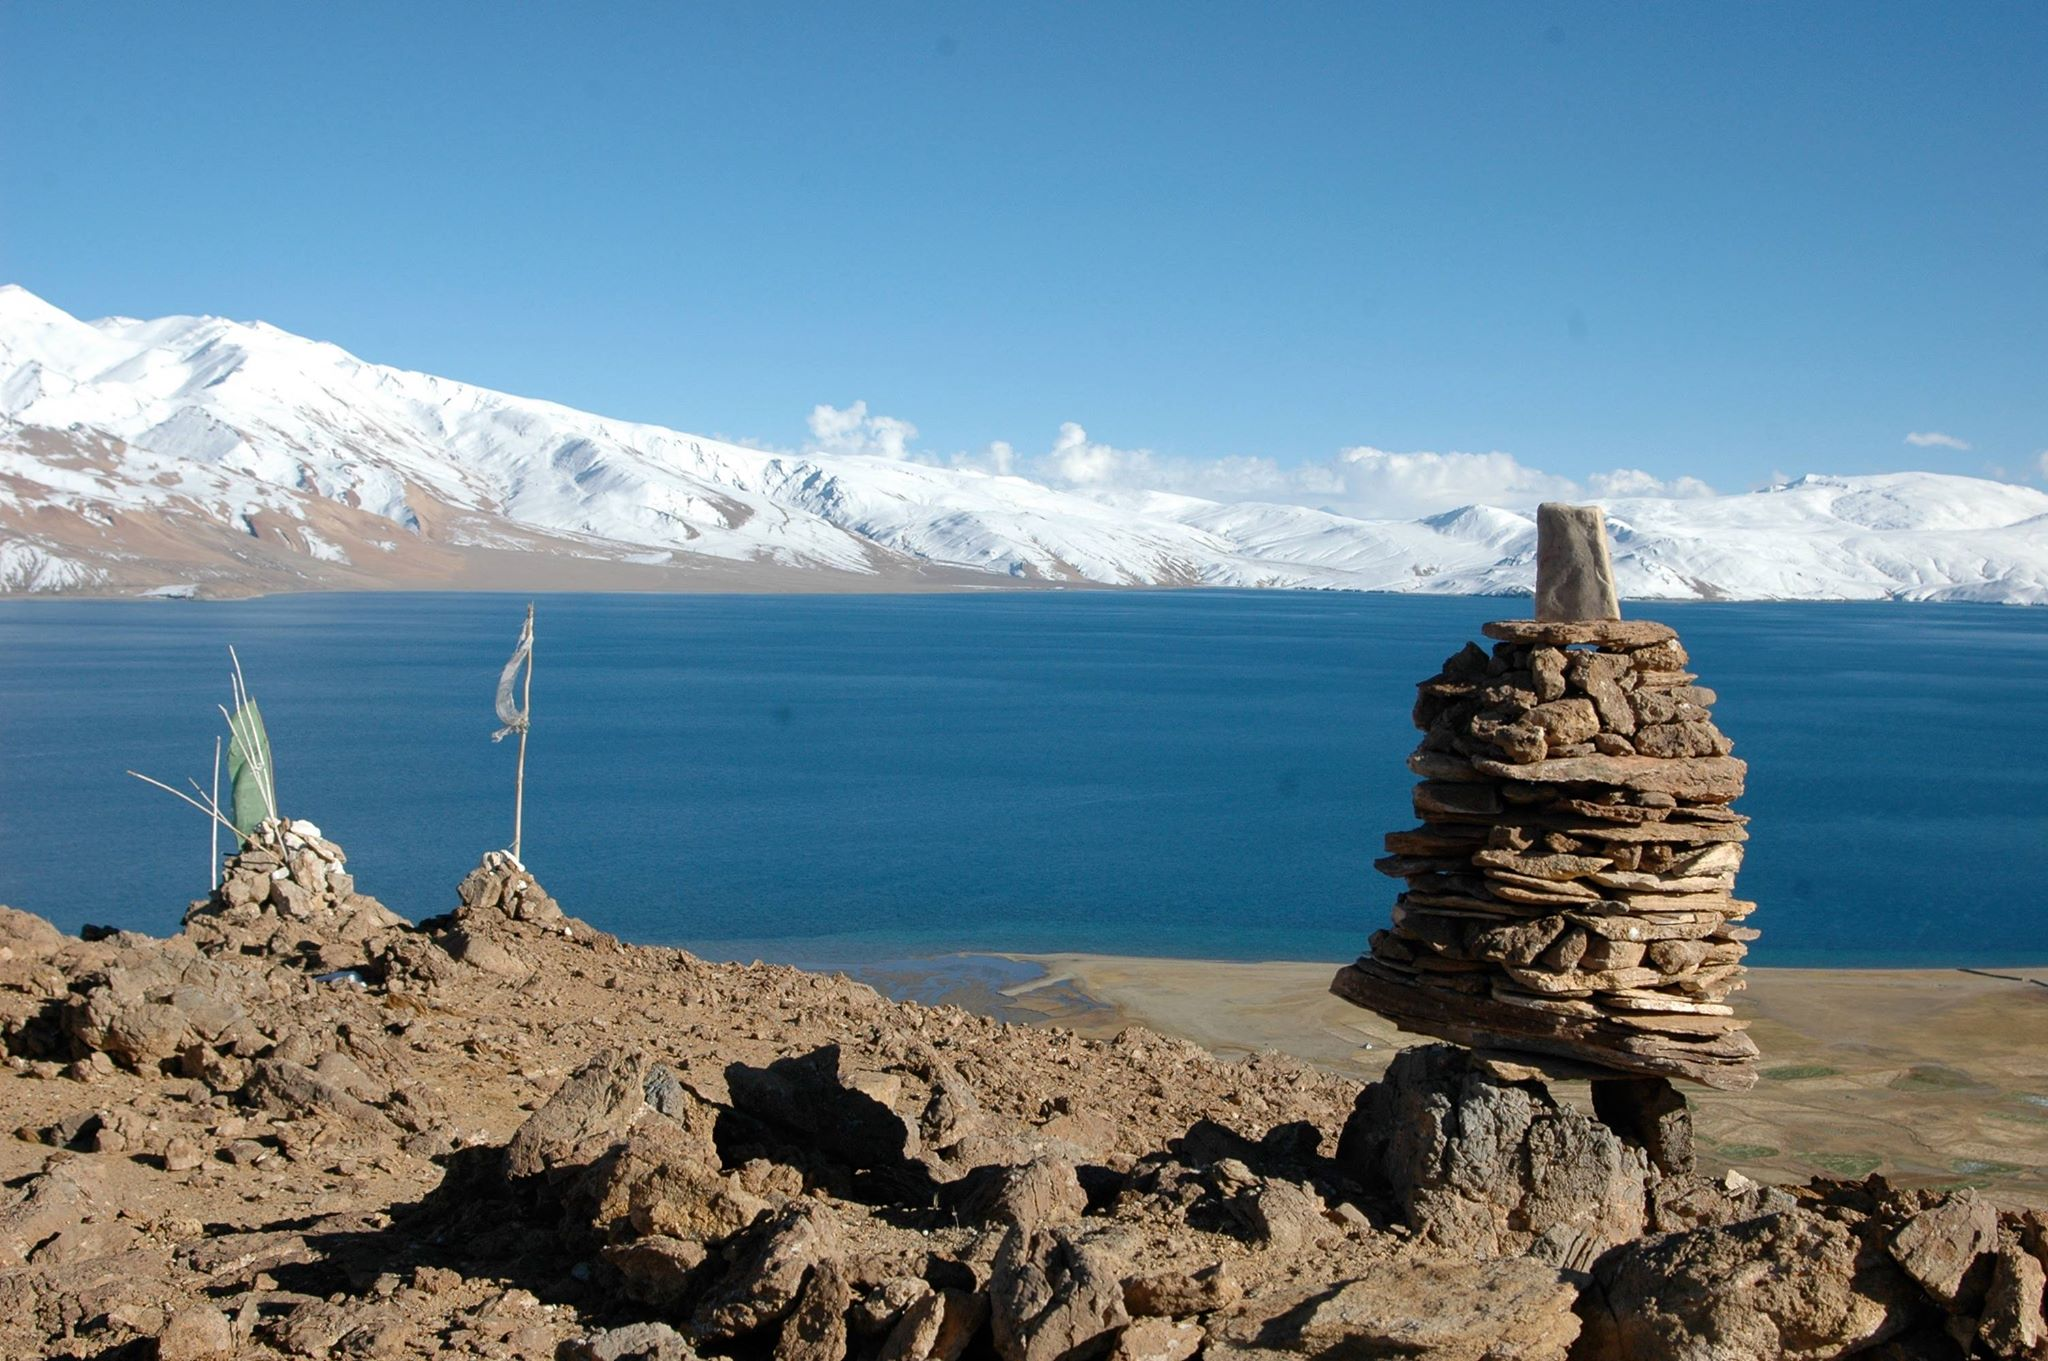 DISCOVER LADAKHI, INDUS VALLEY AND TSOKAR & TSOMORIRI LAKES